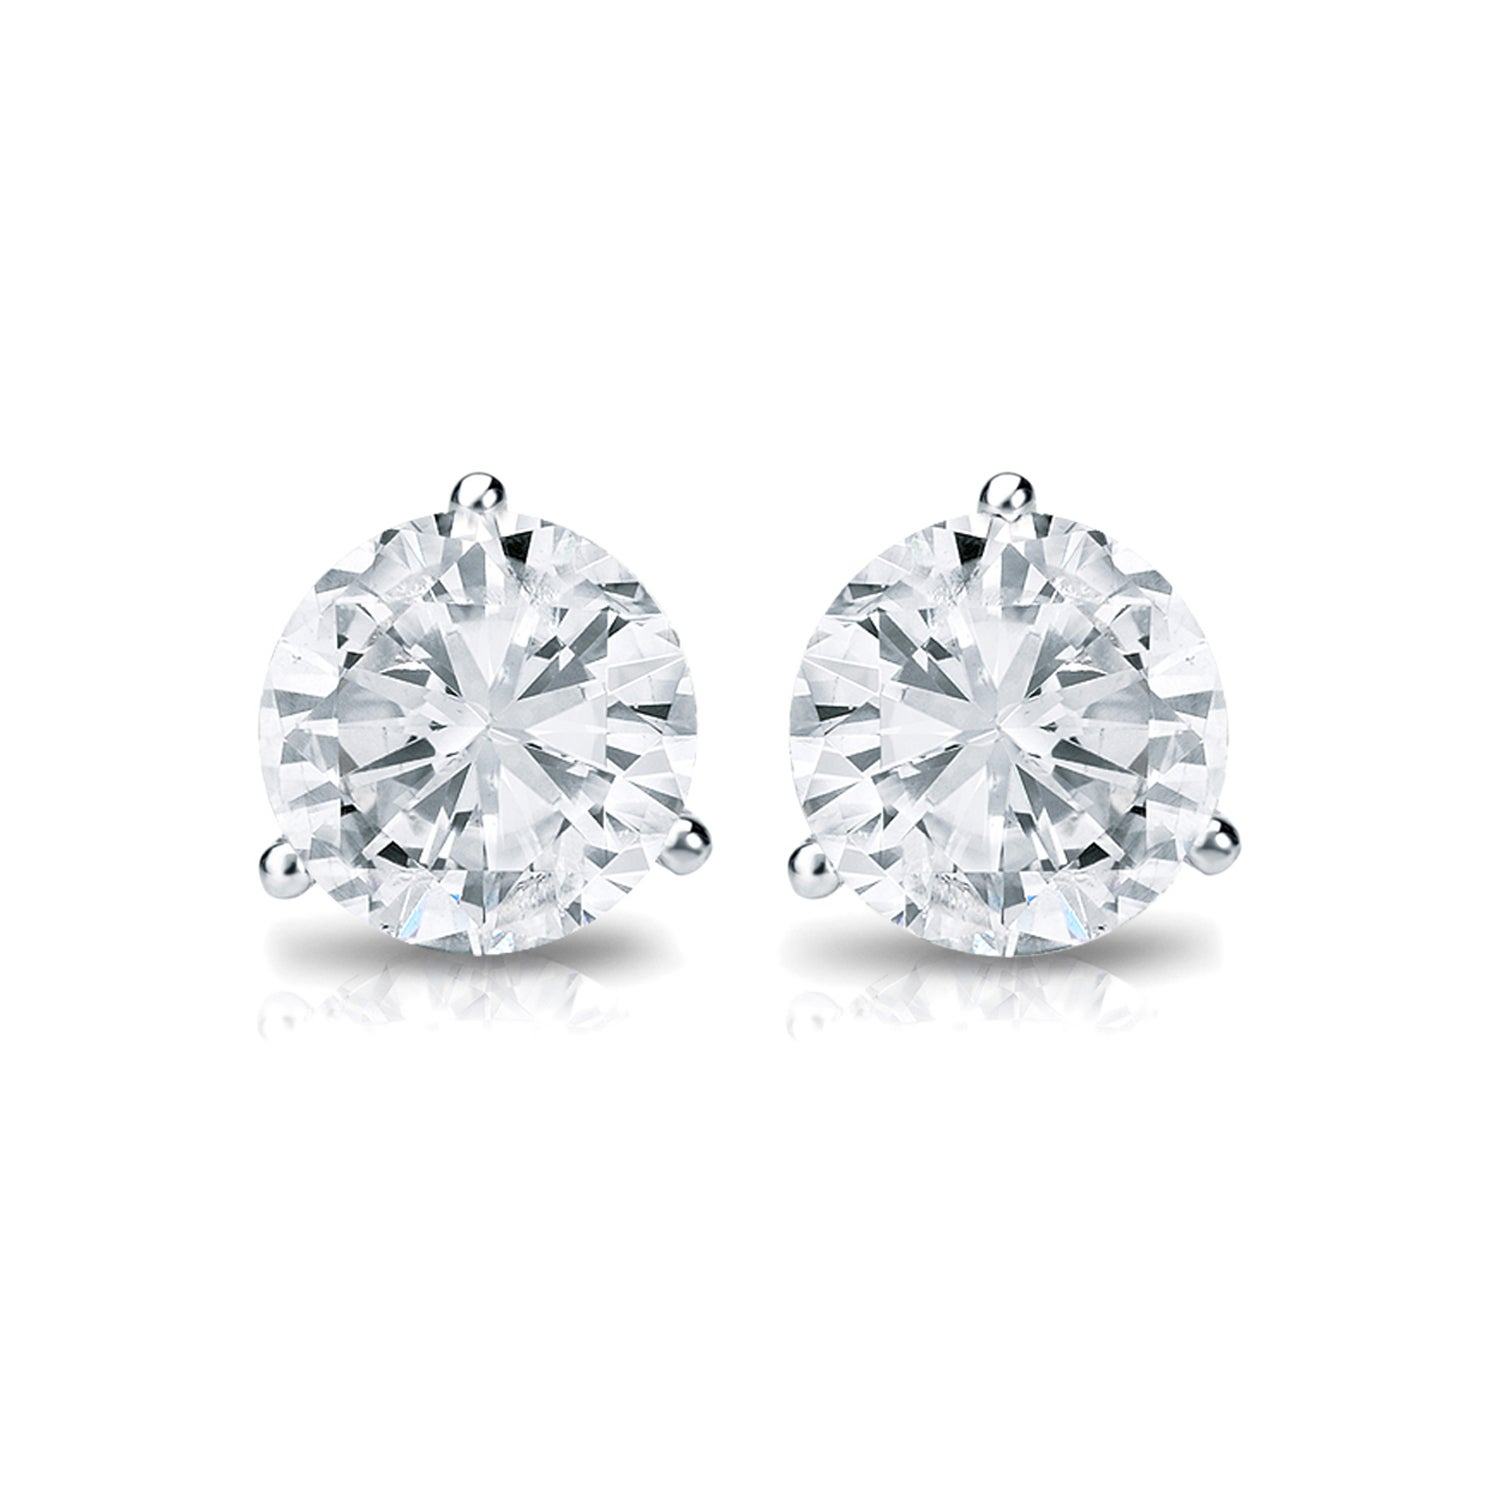 Details about Platinum Round 1 3ct TDW Three Prong Martini Diamond Stud  Earrings by Auriya - 3d4cdc683